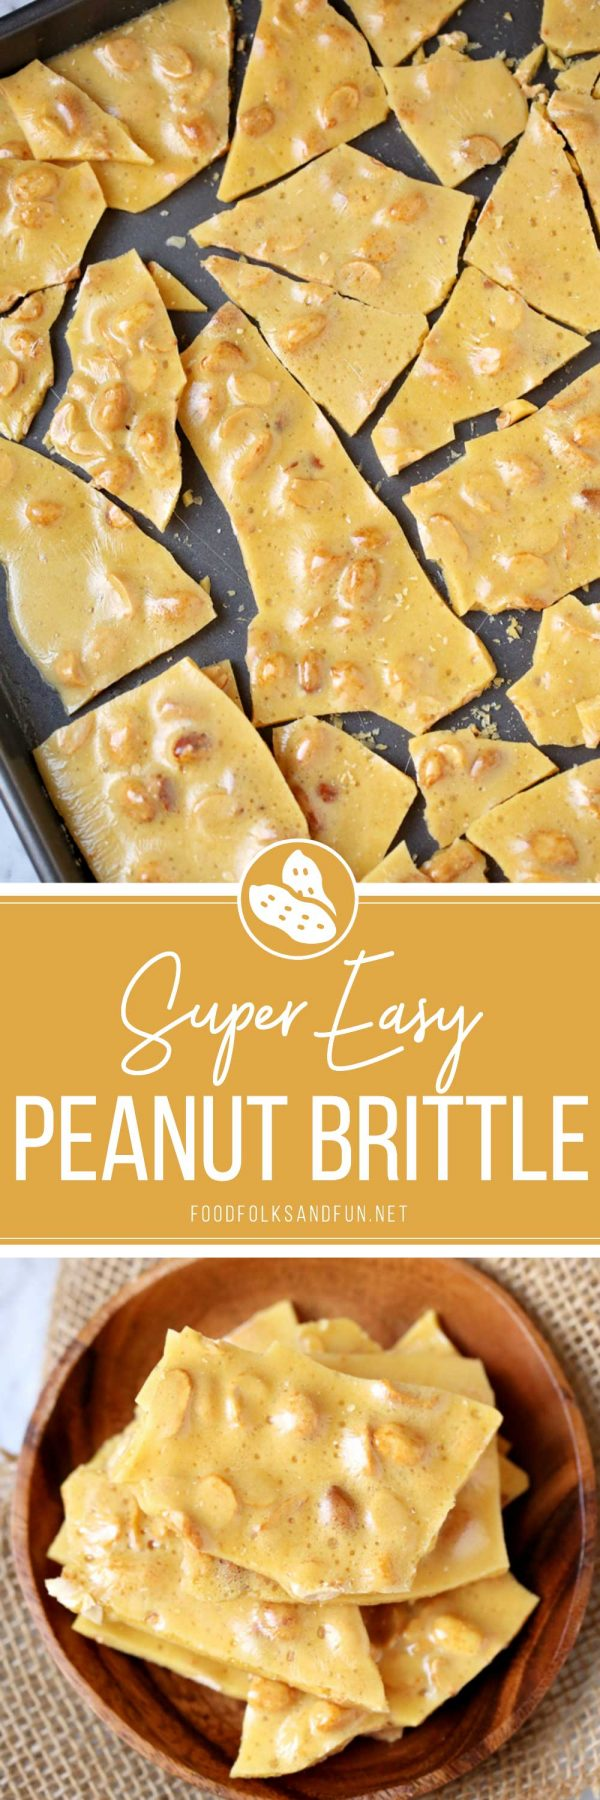 A picture collage of the finished brittle recipe.